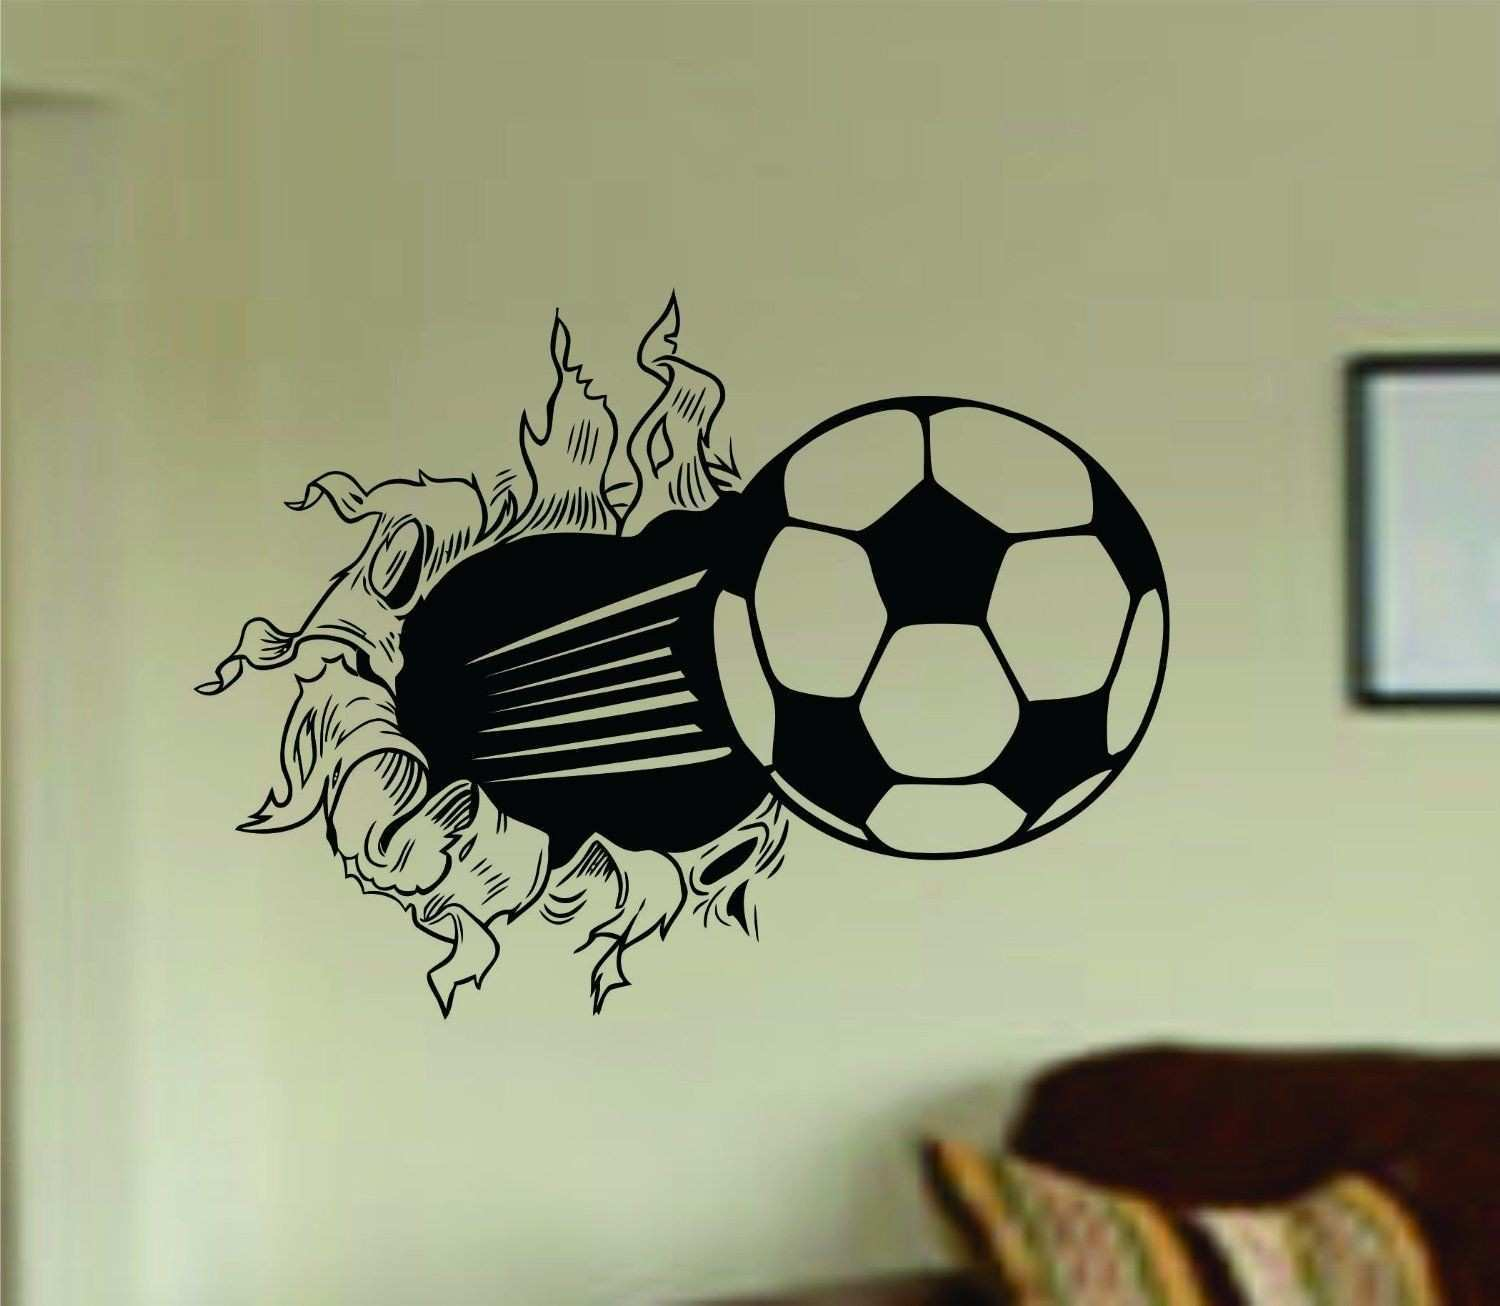 Soccer Wall Decals Best Of Amazon soccer Ball Bursting Through Wall Vinyl Wall Decal